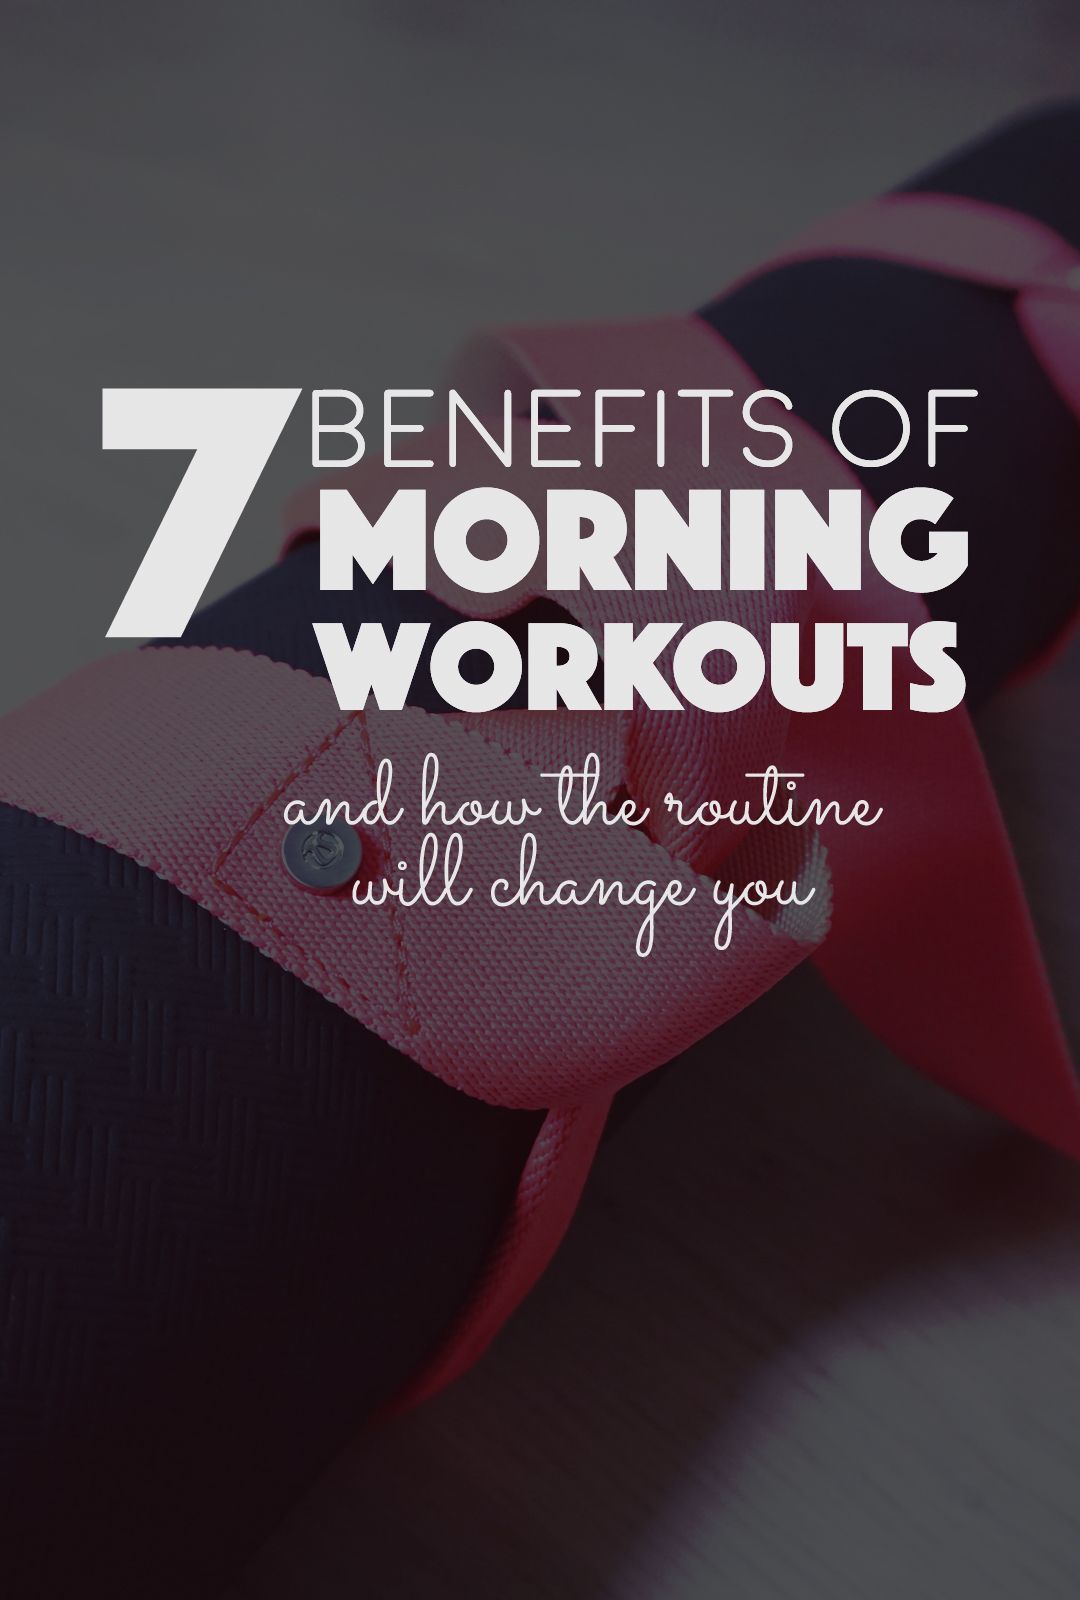 Benefits of Exercise After Retirement